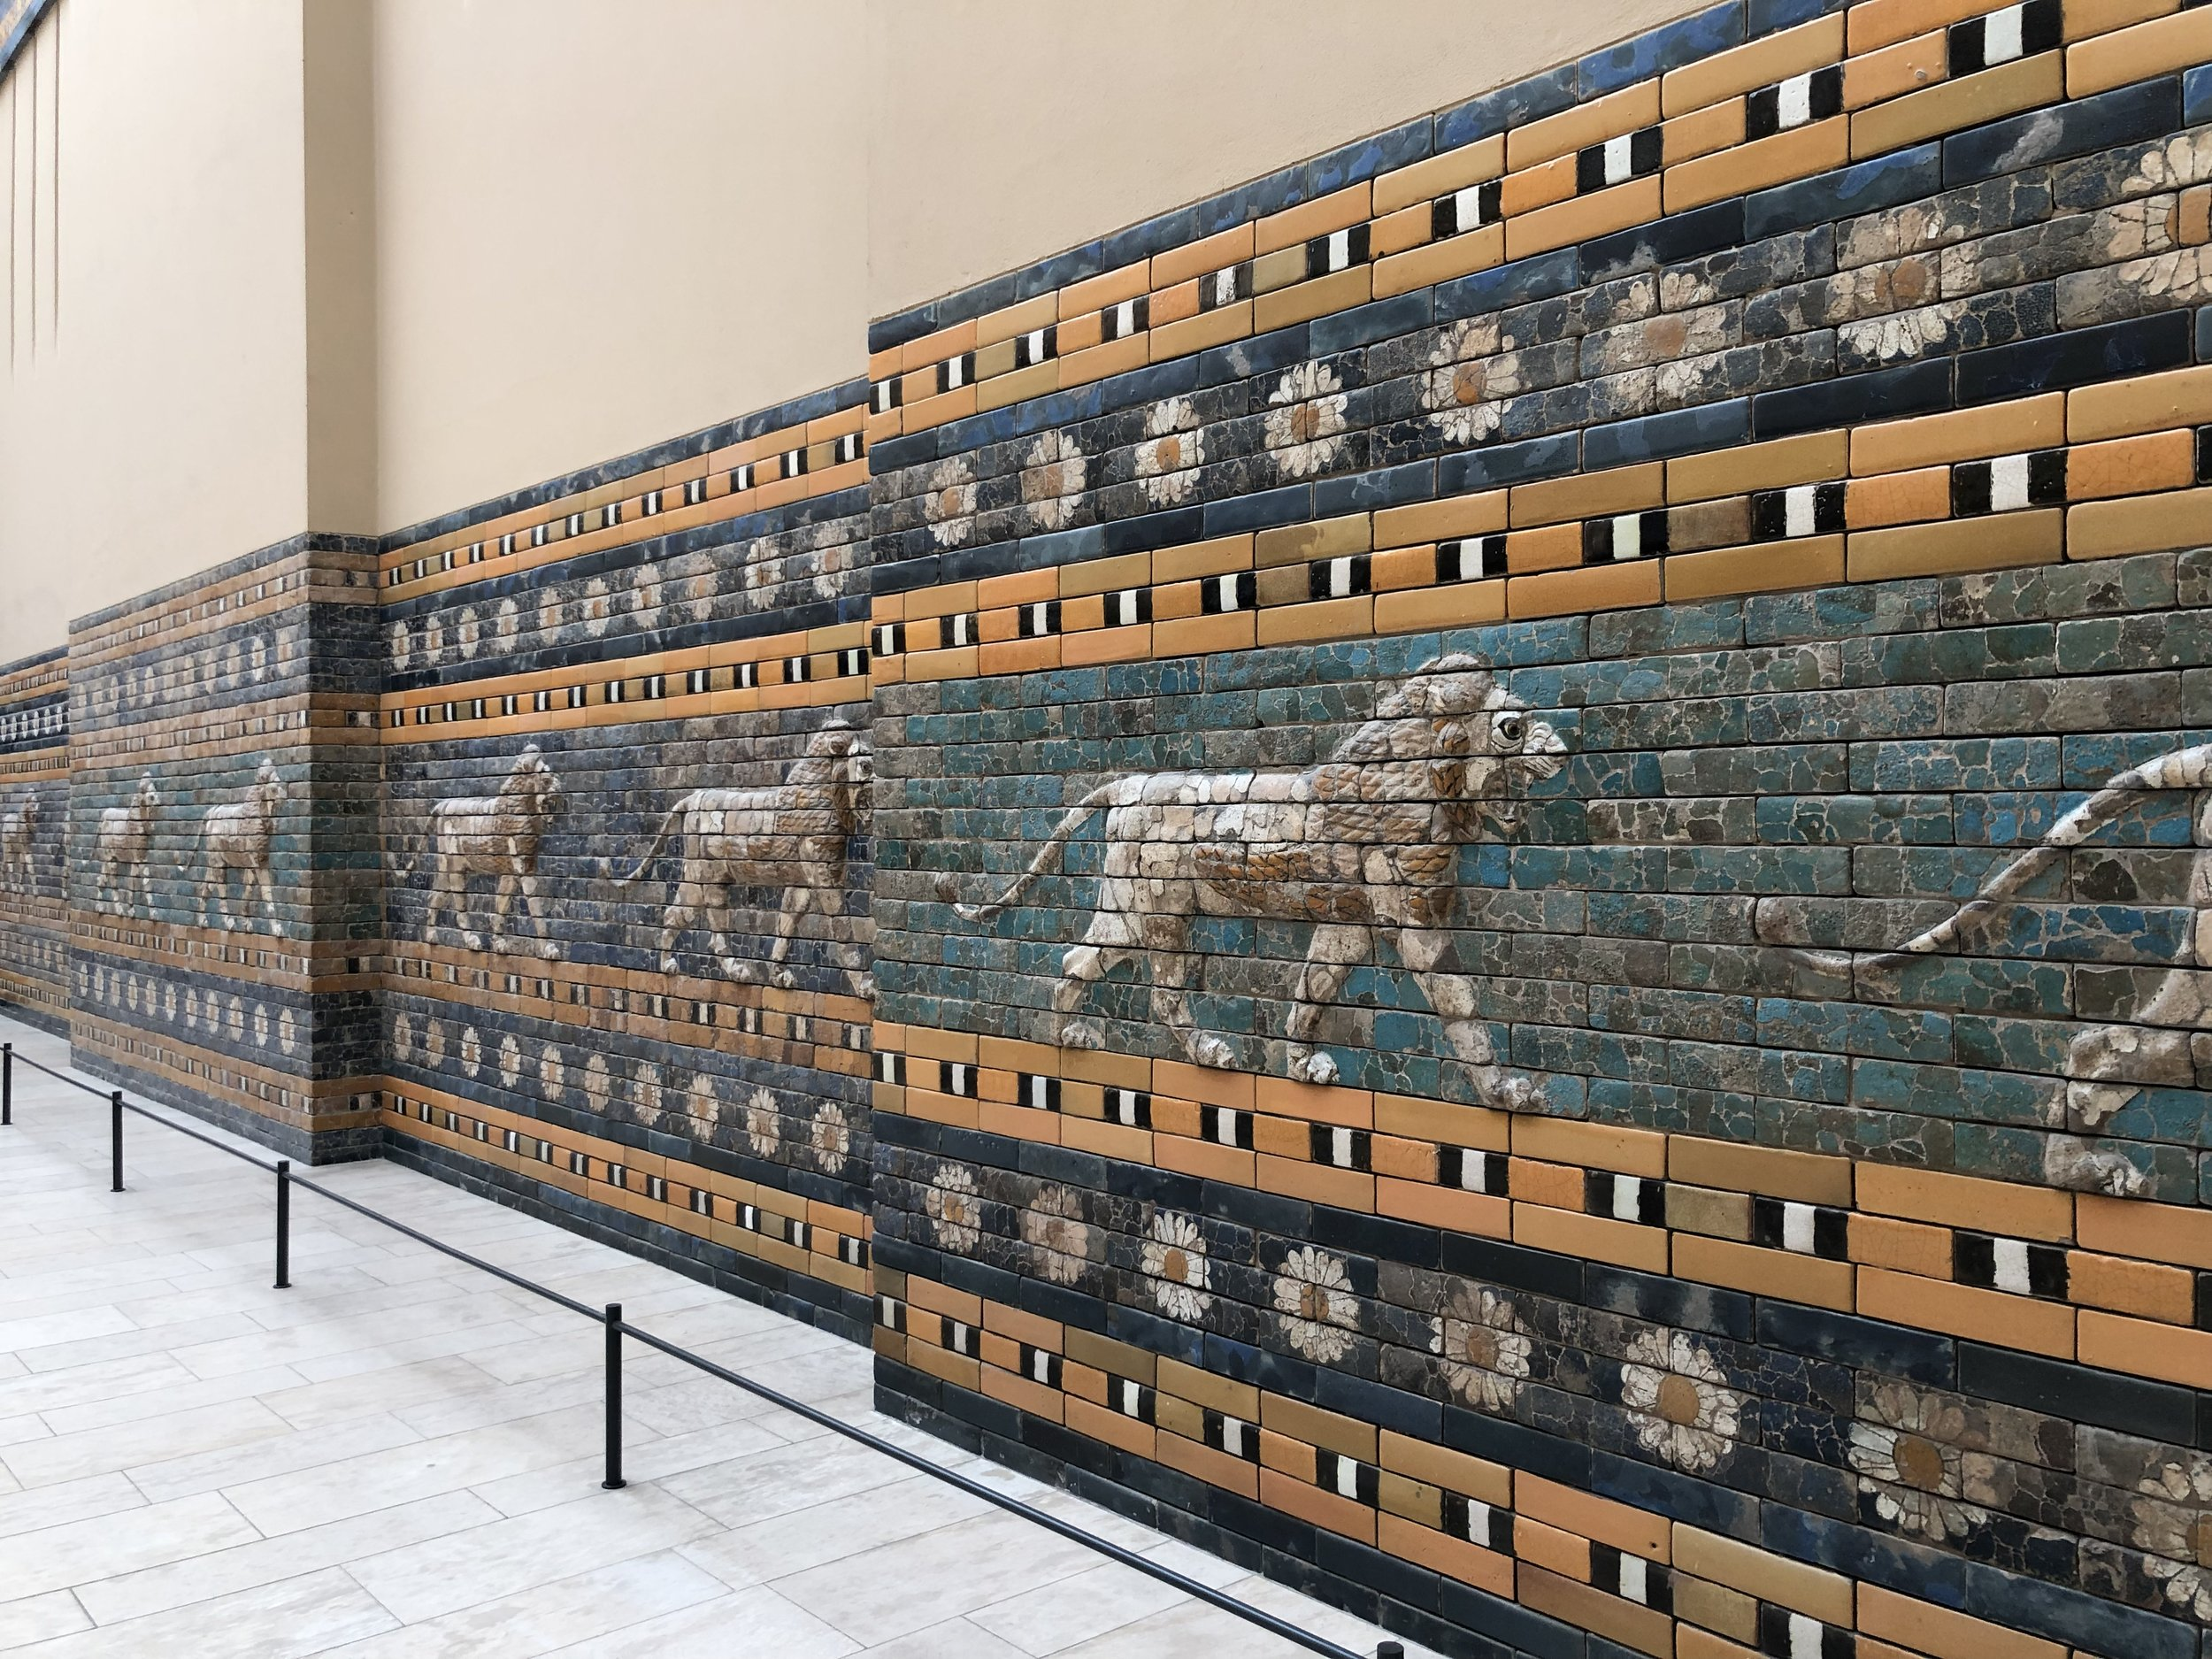 Inside the Pergamon Museum is one of the most fantastic things I have ever seen. It is the Ishtar Gate which served as one of the entrances to the inner city of Babylon. When archaeologists discovered the bricks that mad up the gate, they were just a pile of rubble broken into fragments. These fragments were subsequently pieced back together to recreate many of the bricks that formed the original structure. If you look closely at this photo, you can see that many of the bricks were pieced together this way. The other unbroken brisks were recreated based upon the designs.